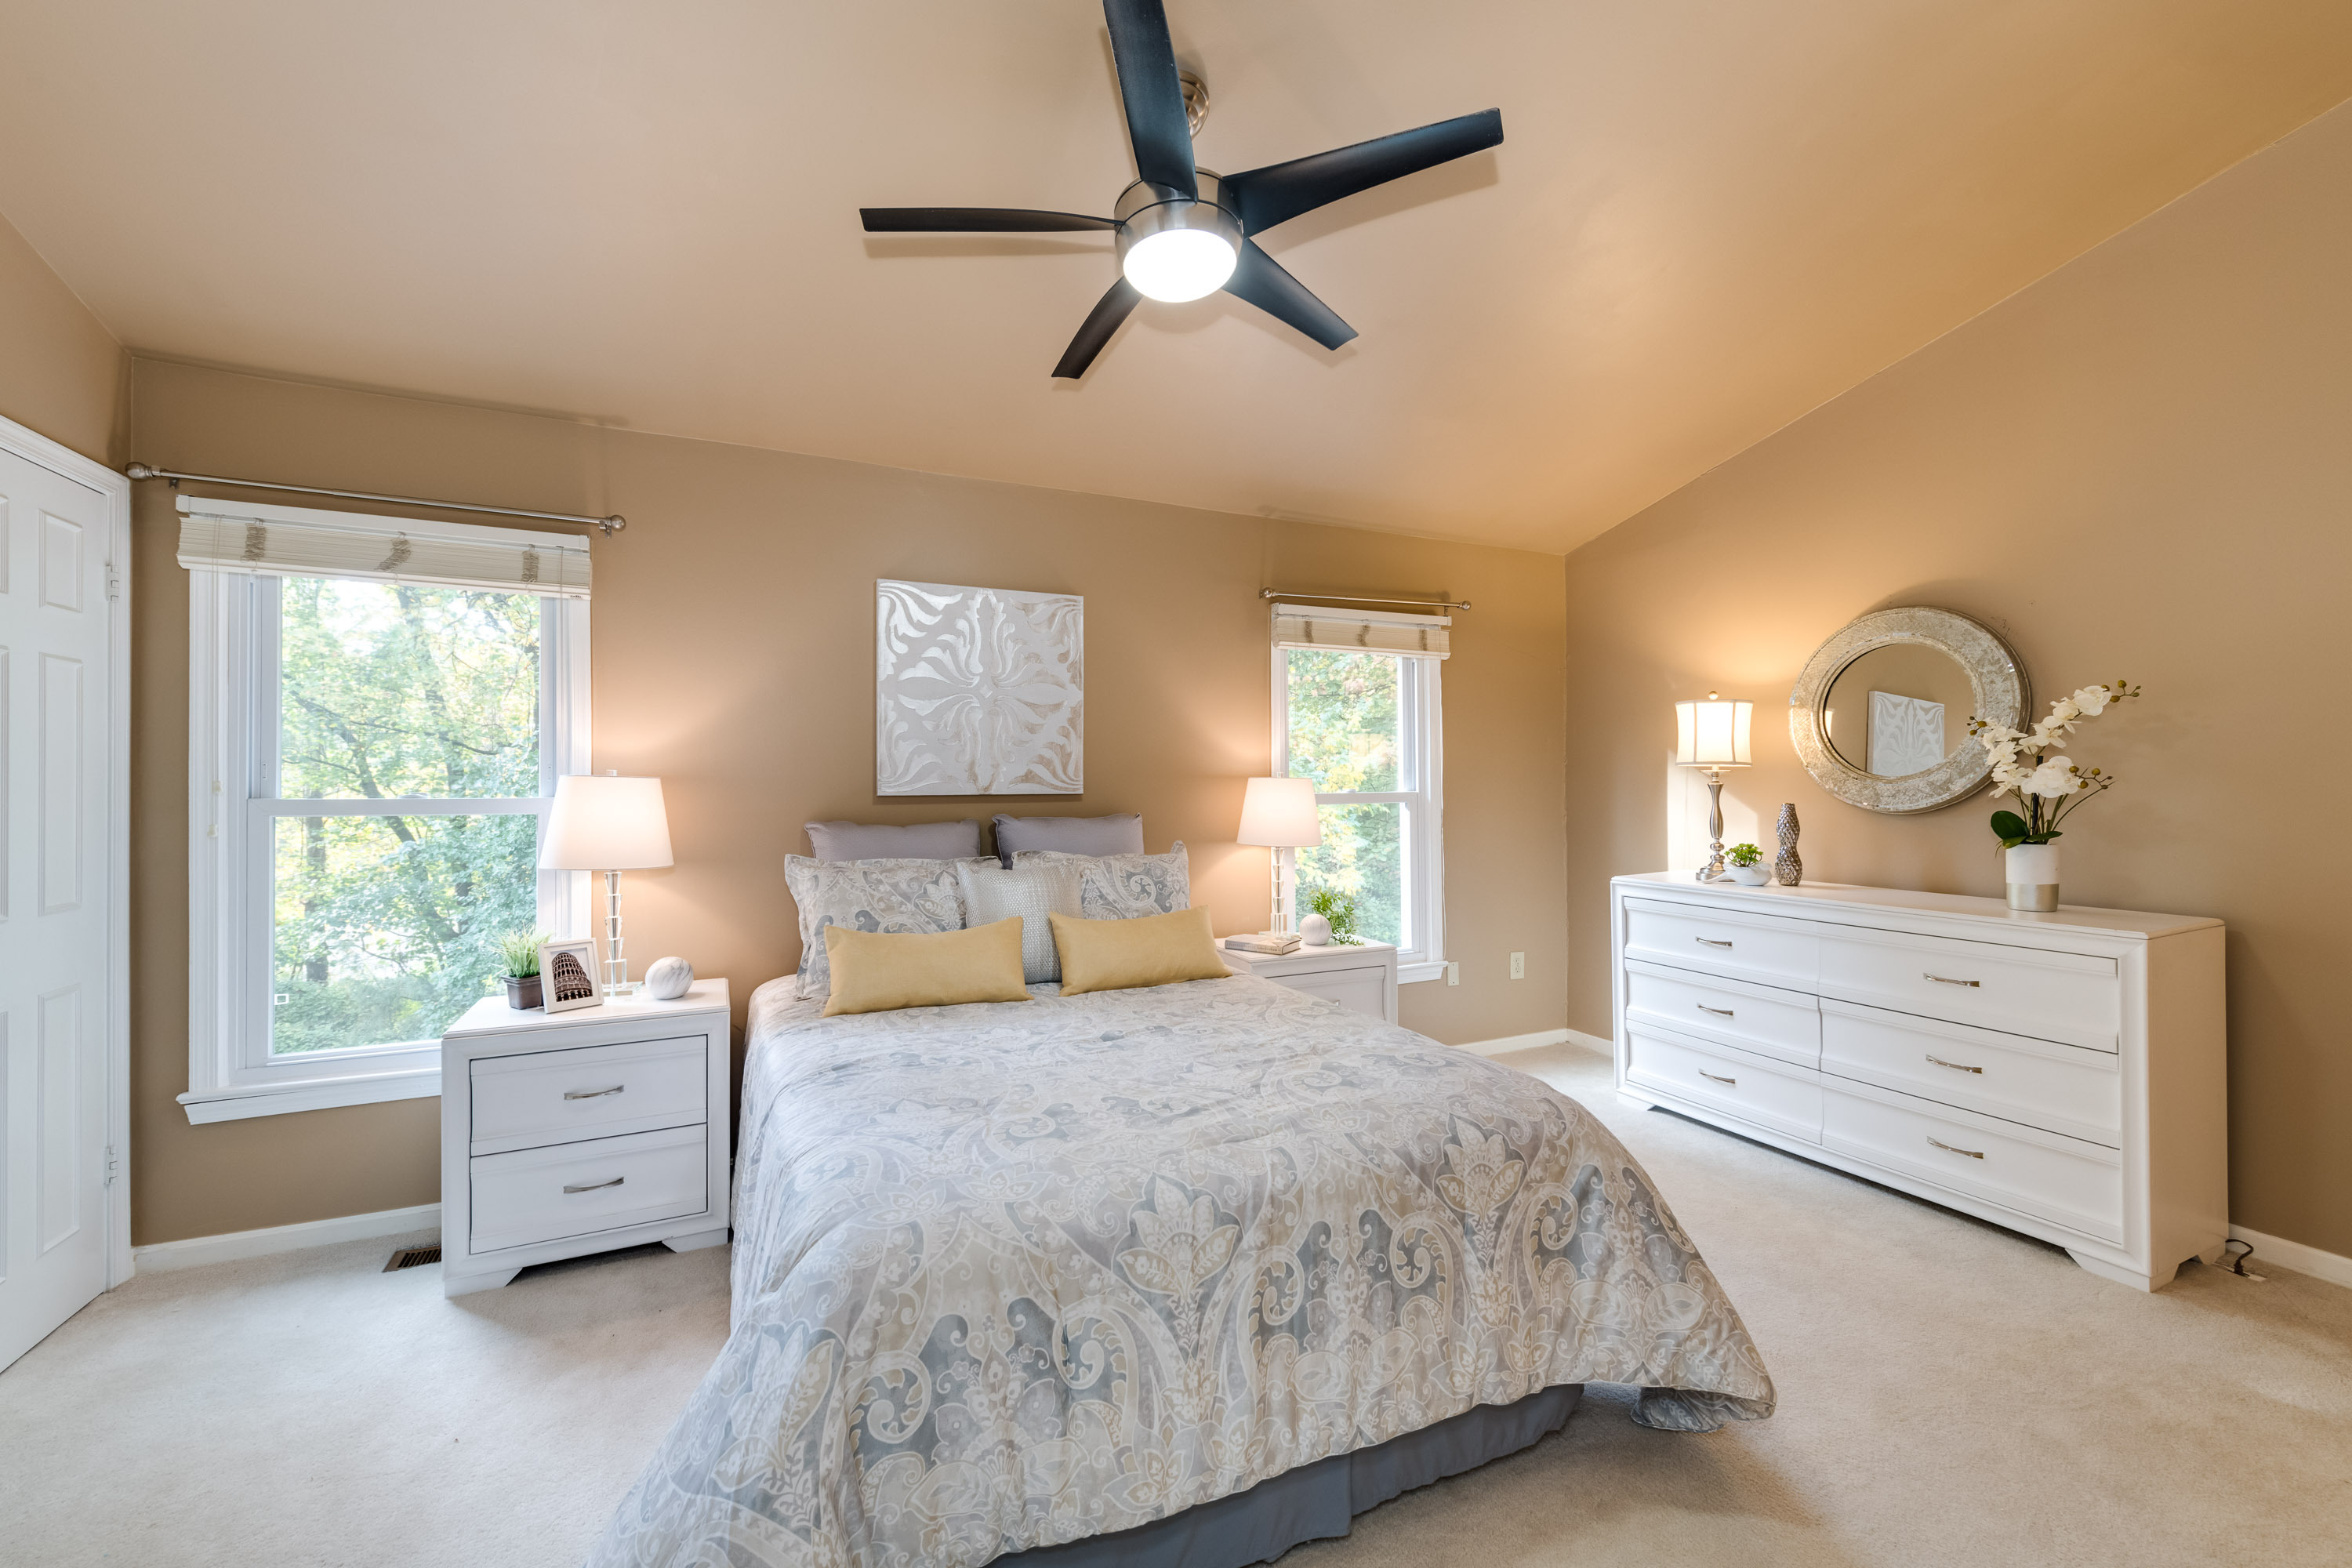 About Deb Harshman And Staged Home Décor And Real Estate